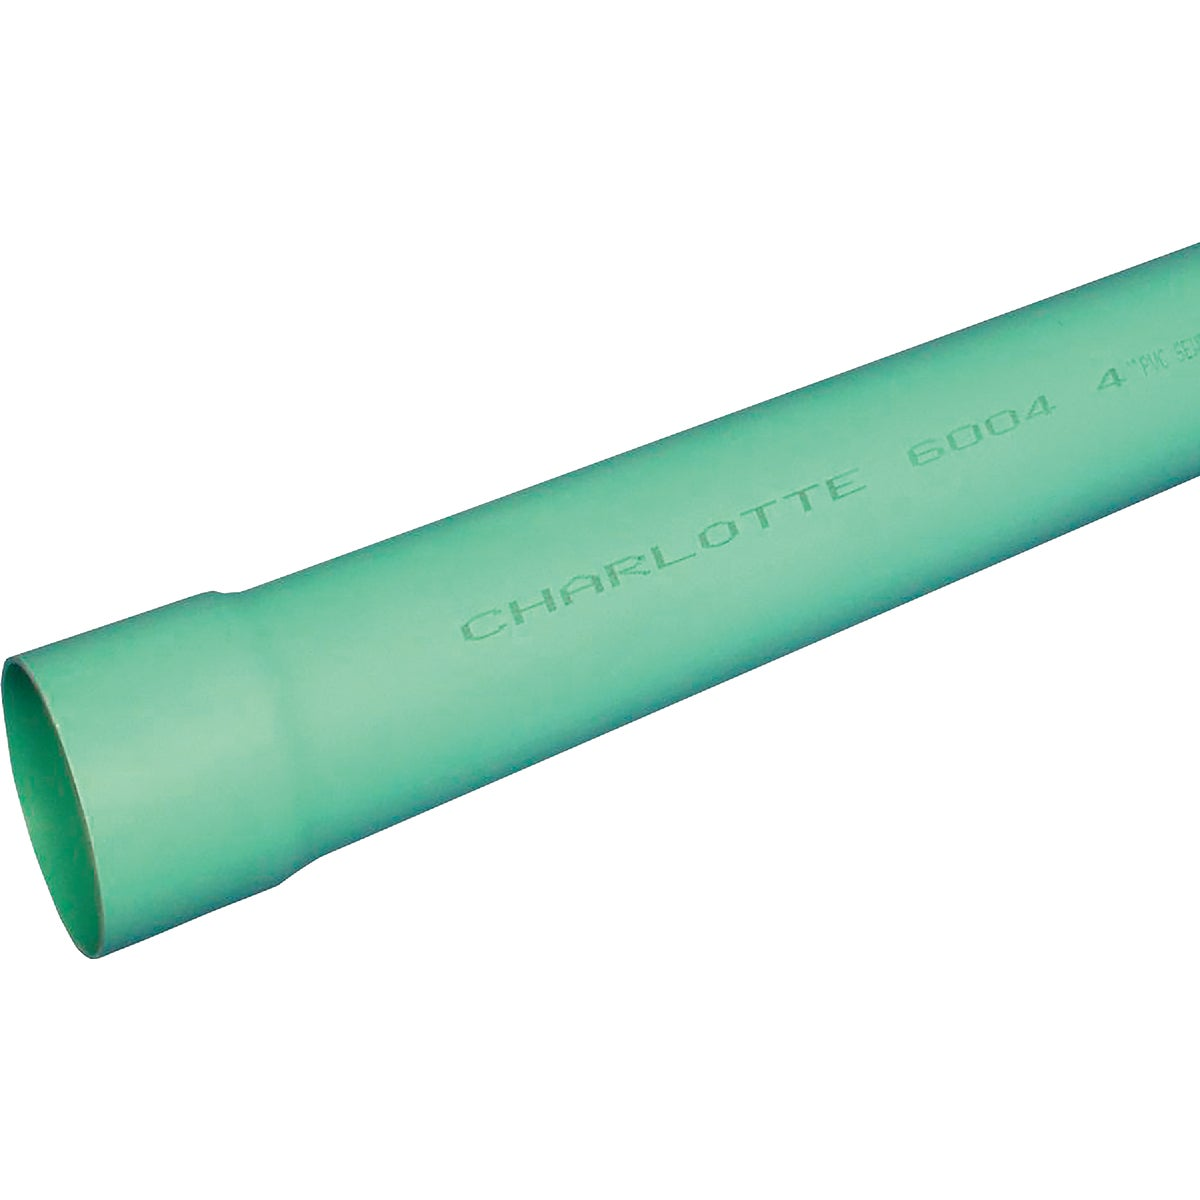 "4""X10'D&S SOLID PVC PIPE - 40050 by Genova Inc"